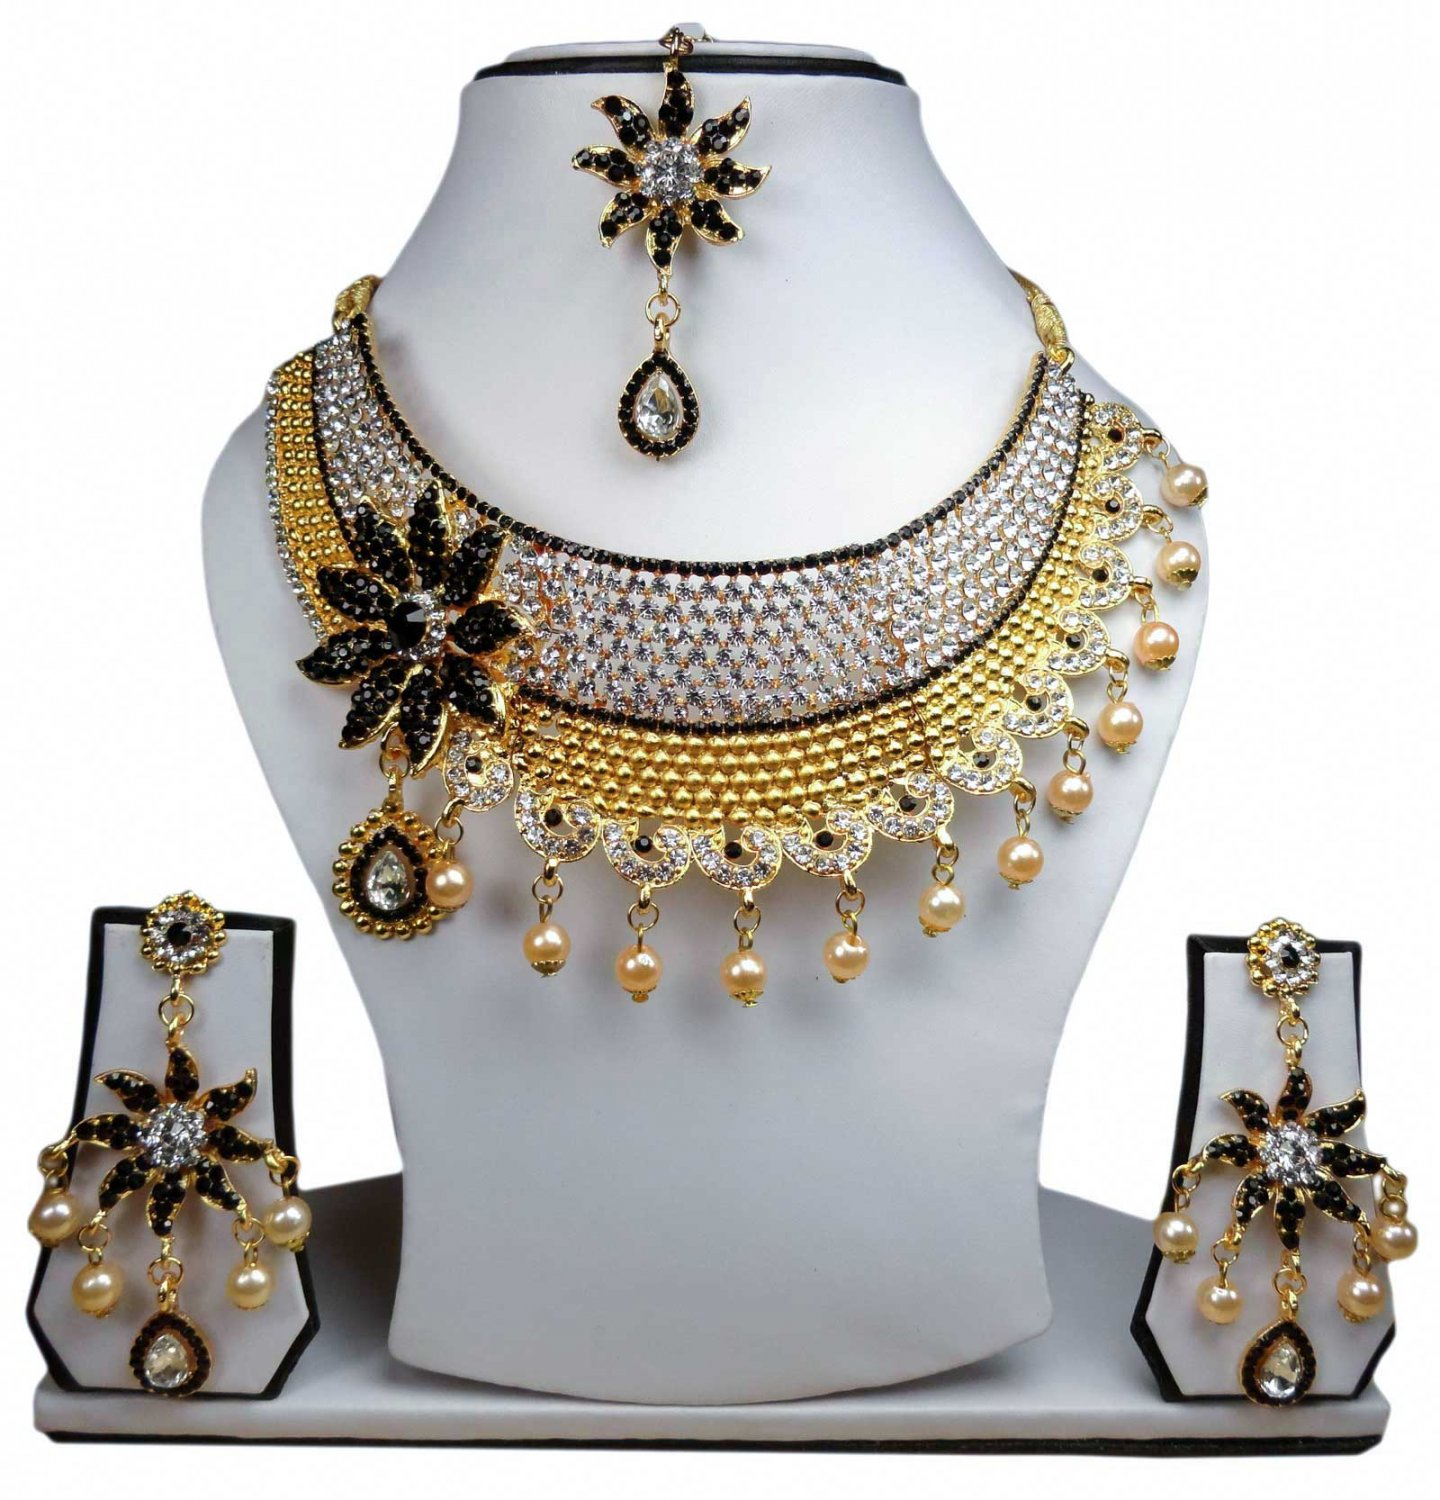 Gold Plated Stunning AD Pearl Jewelry Flower Styled Necklace Matching Earrings Set Black Color